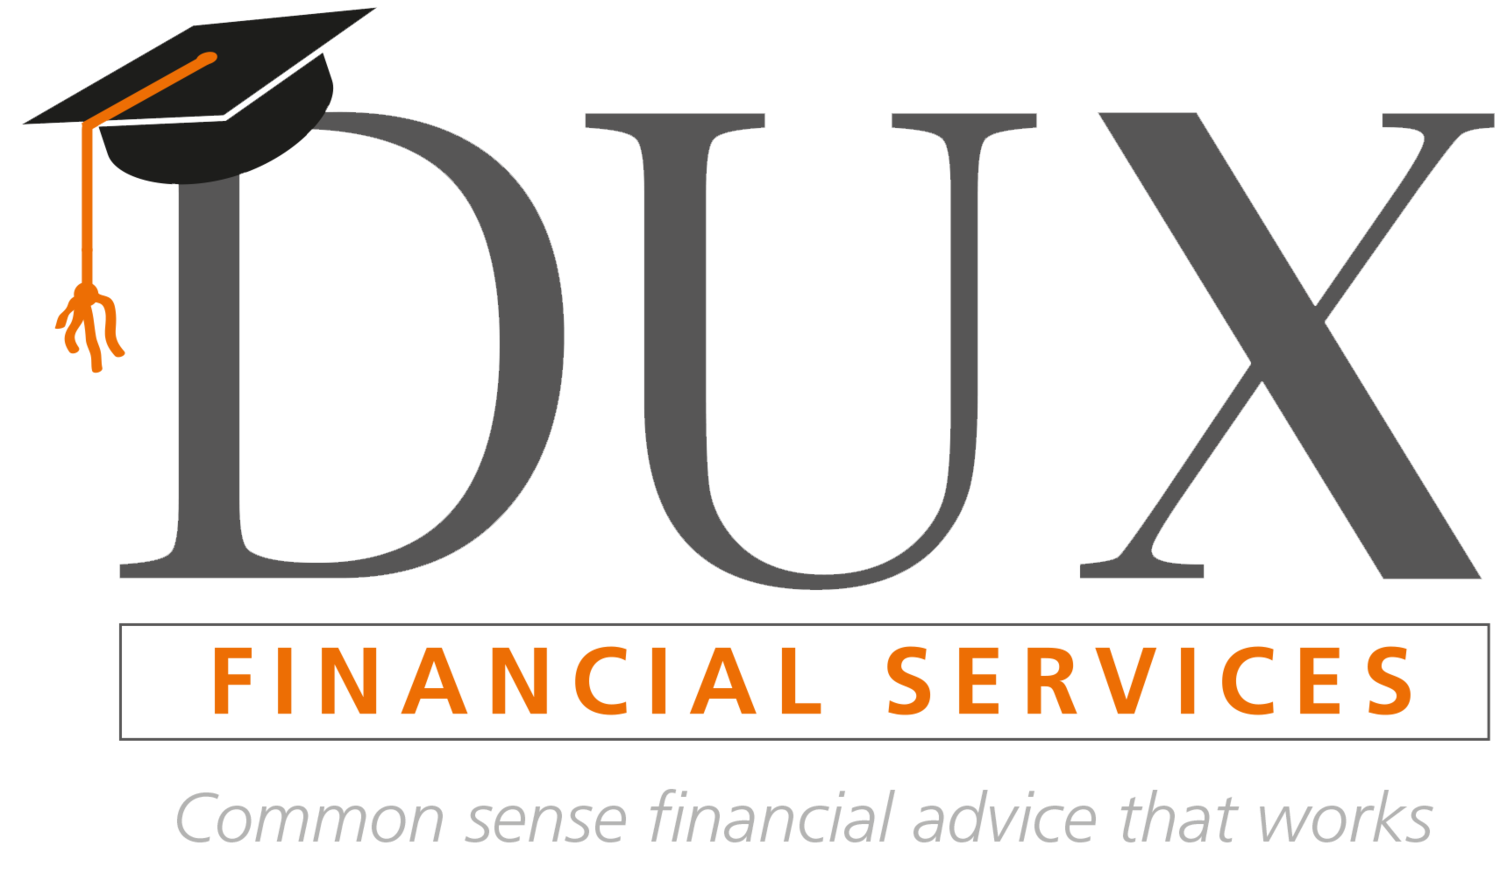 About dux financial services. Finance clipart cost structure